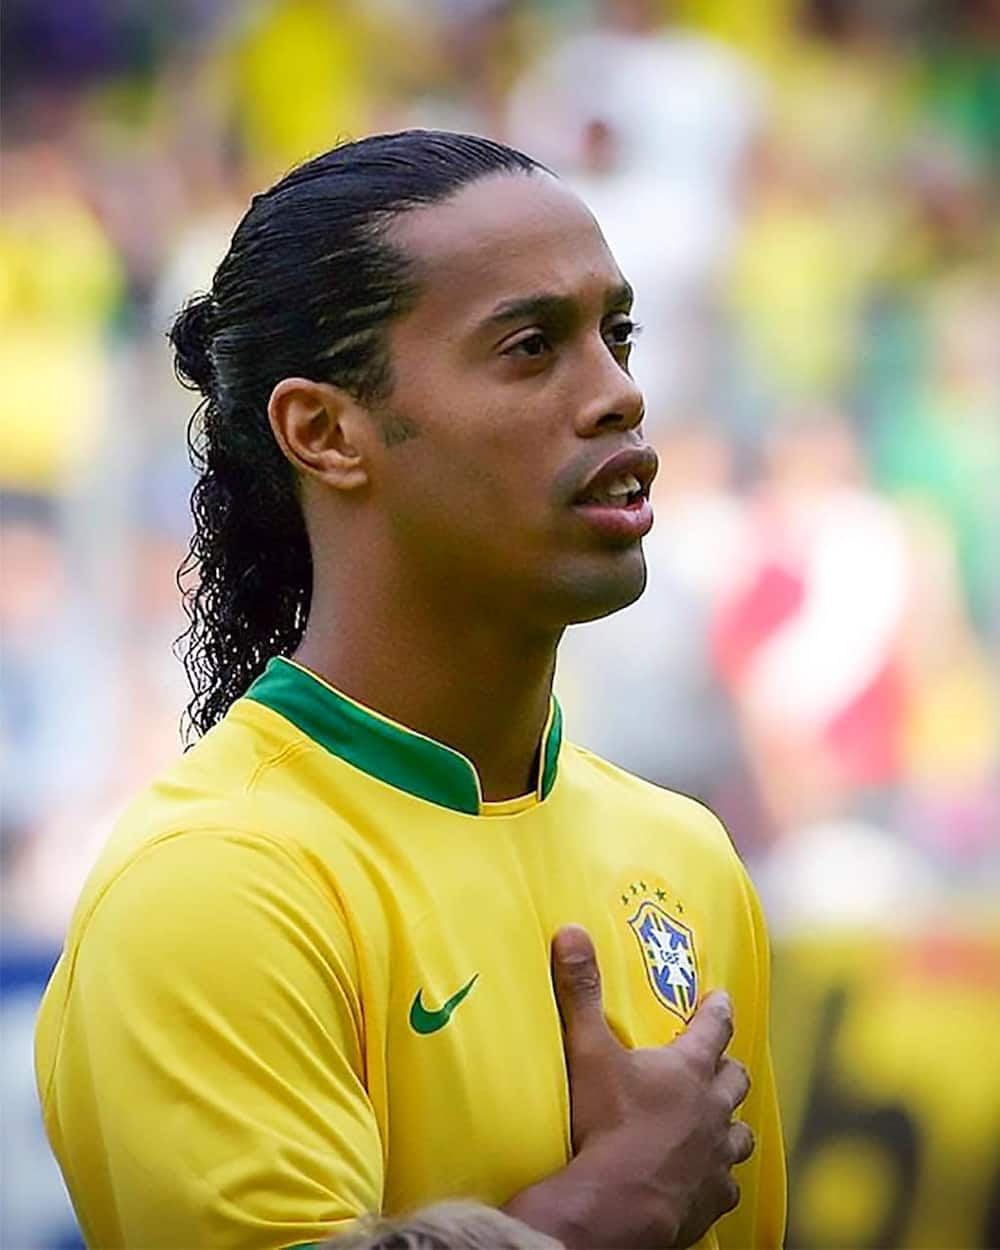 Ronaldinho age, family, career, scandals, awards, net worth, profile